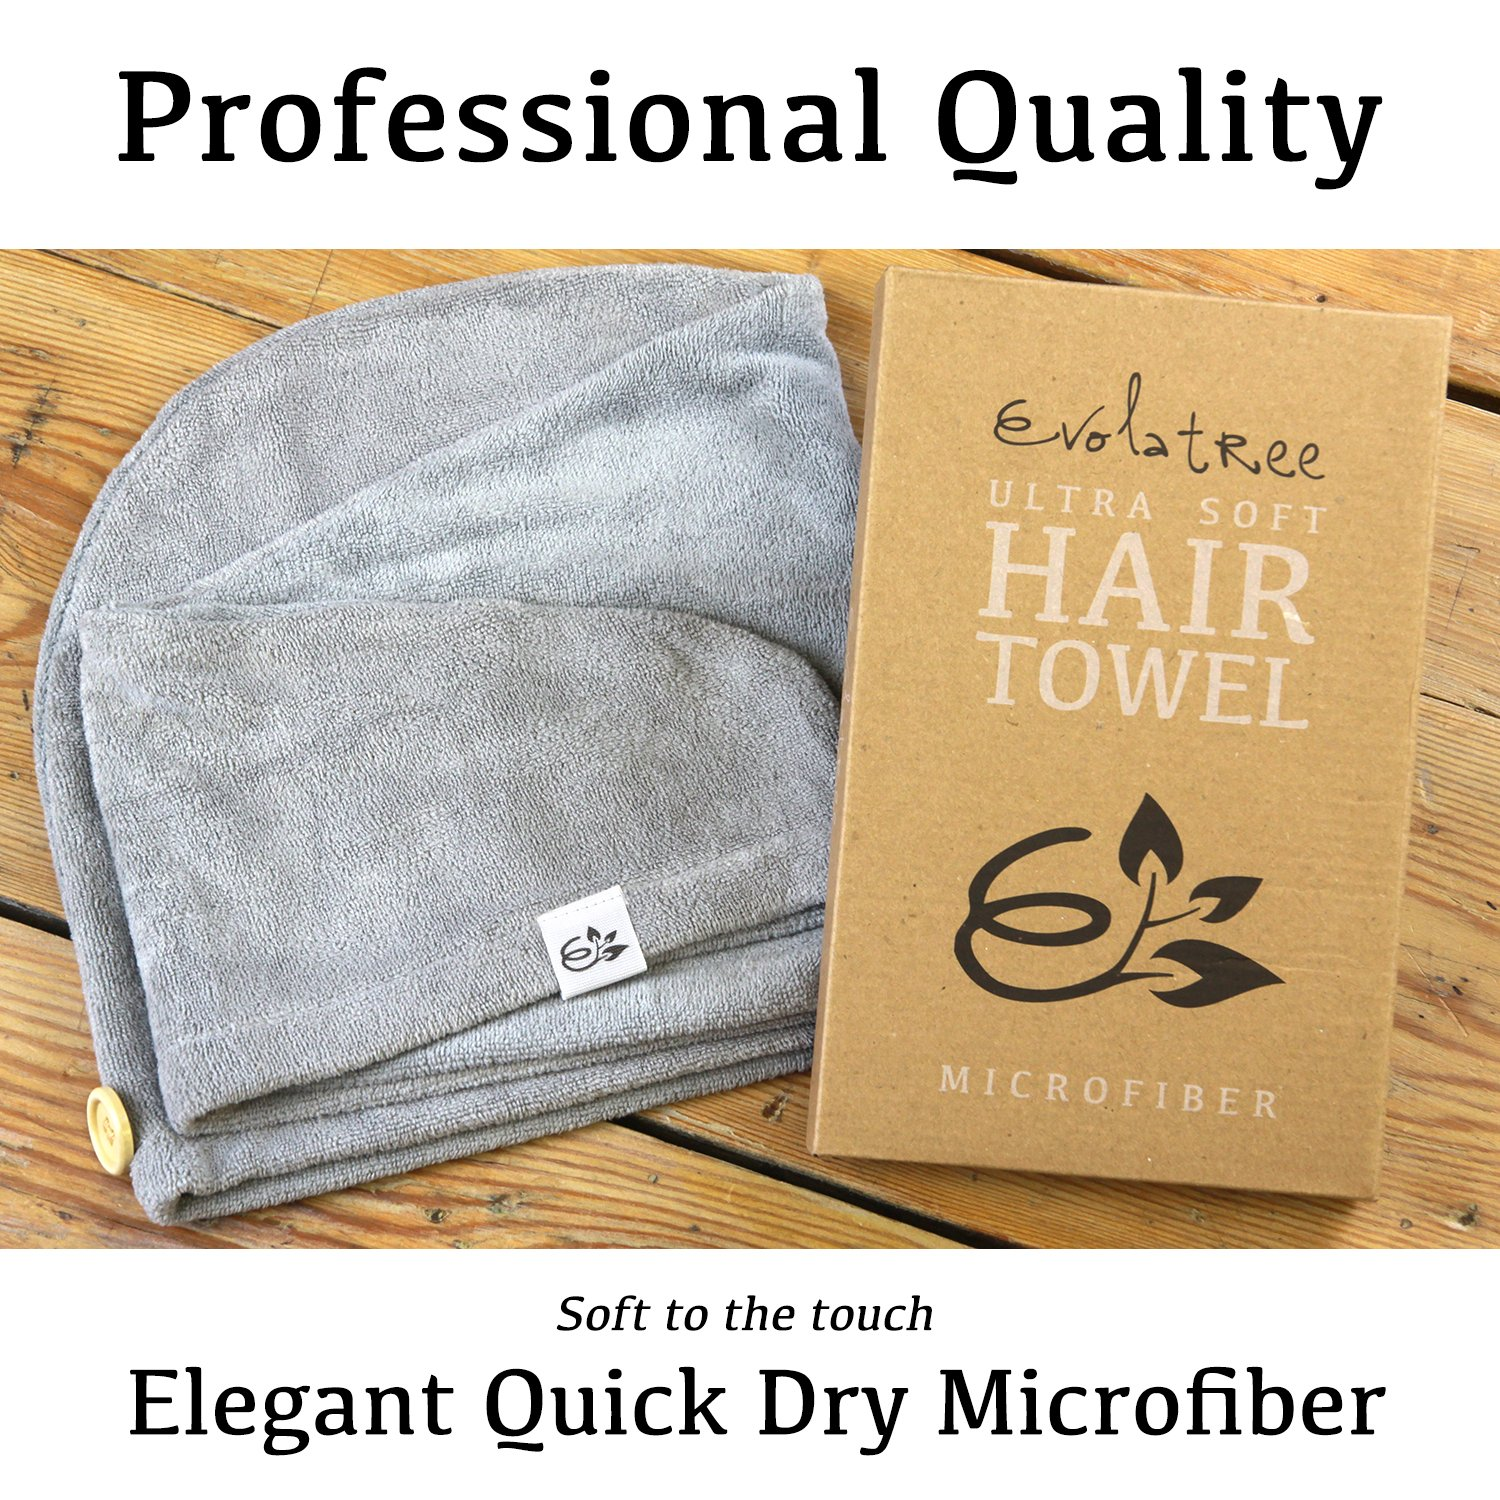 Evolatree Microfiber Hair Towel Wrap - Quick Magic Hair Dry Hat - Anti Frizz Products For Curly Hair Drying Towels - Neutral Gray by Evolatree (Image #7)